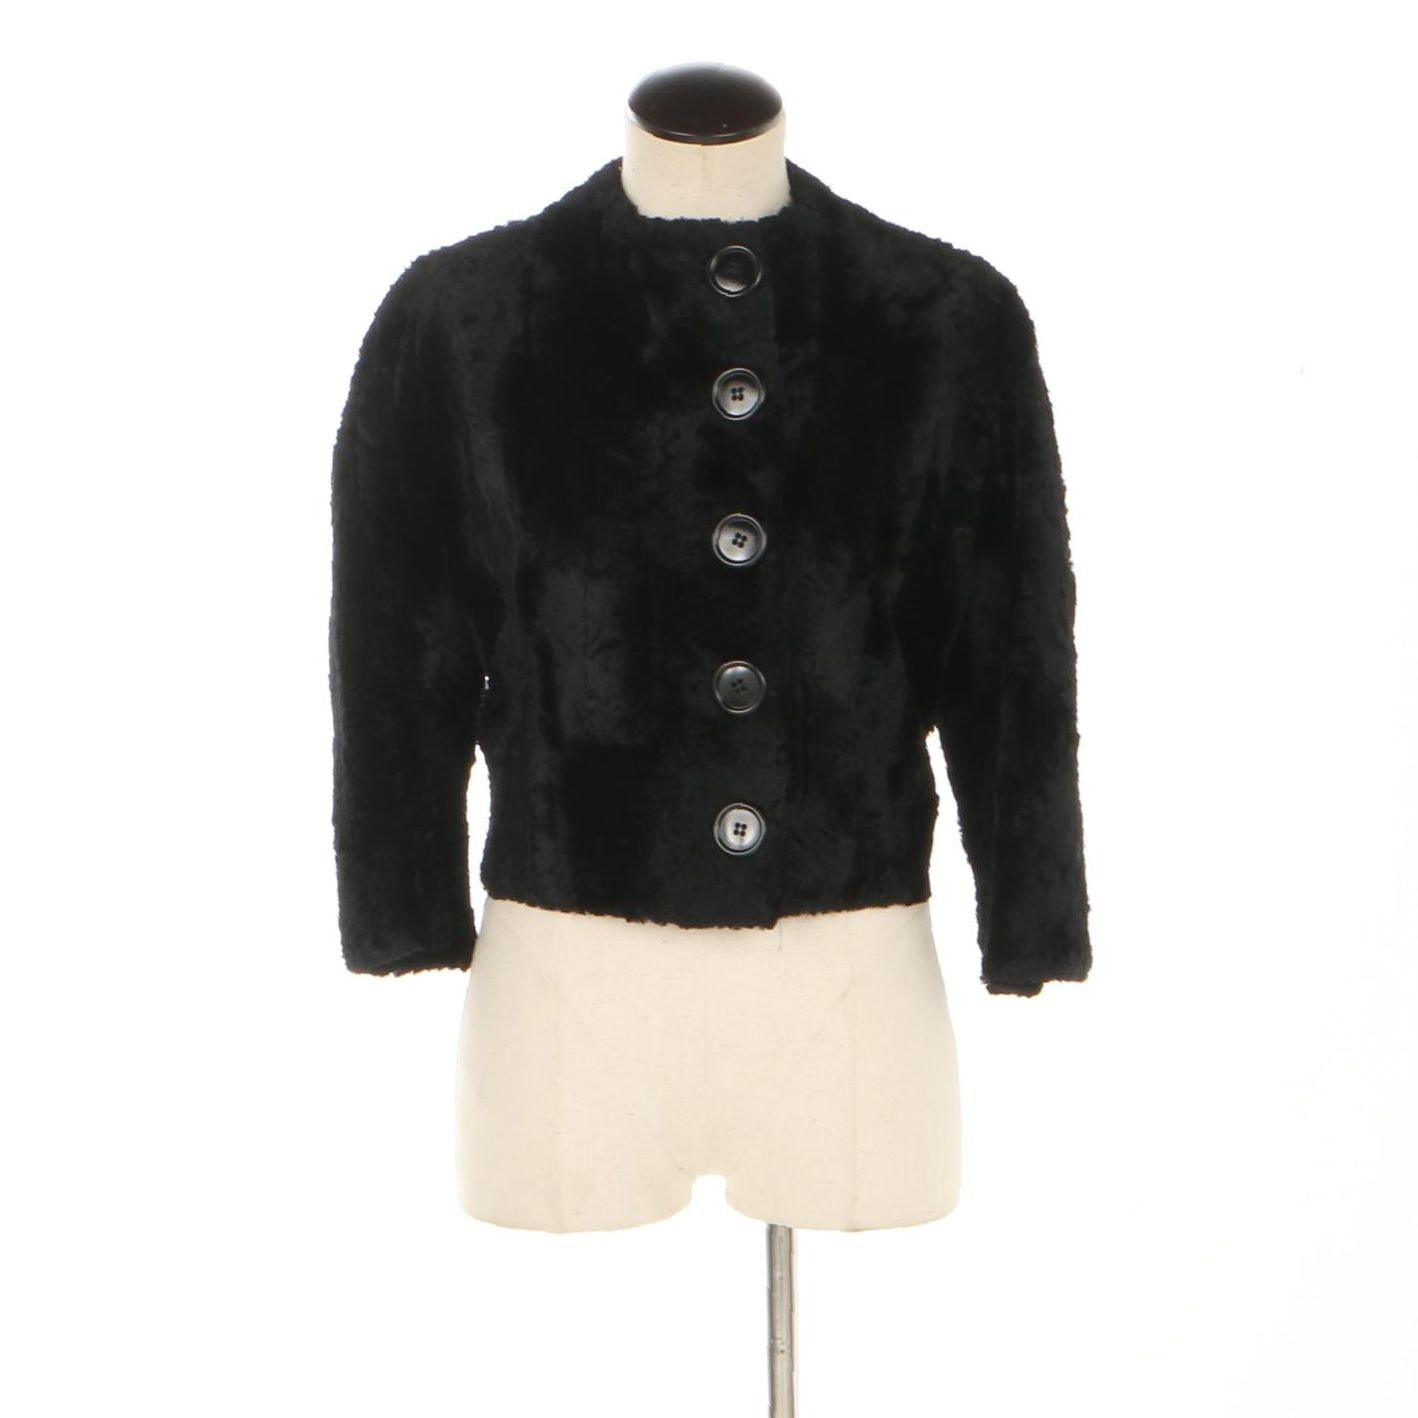 Women's Vintage Neiman Marcus Black Faux Fur Jacket